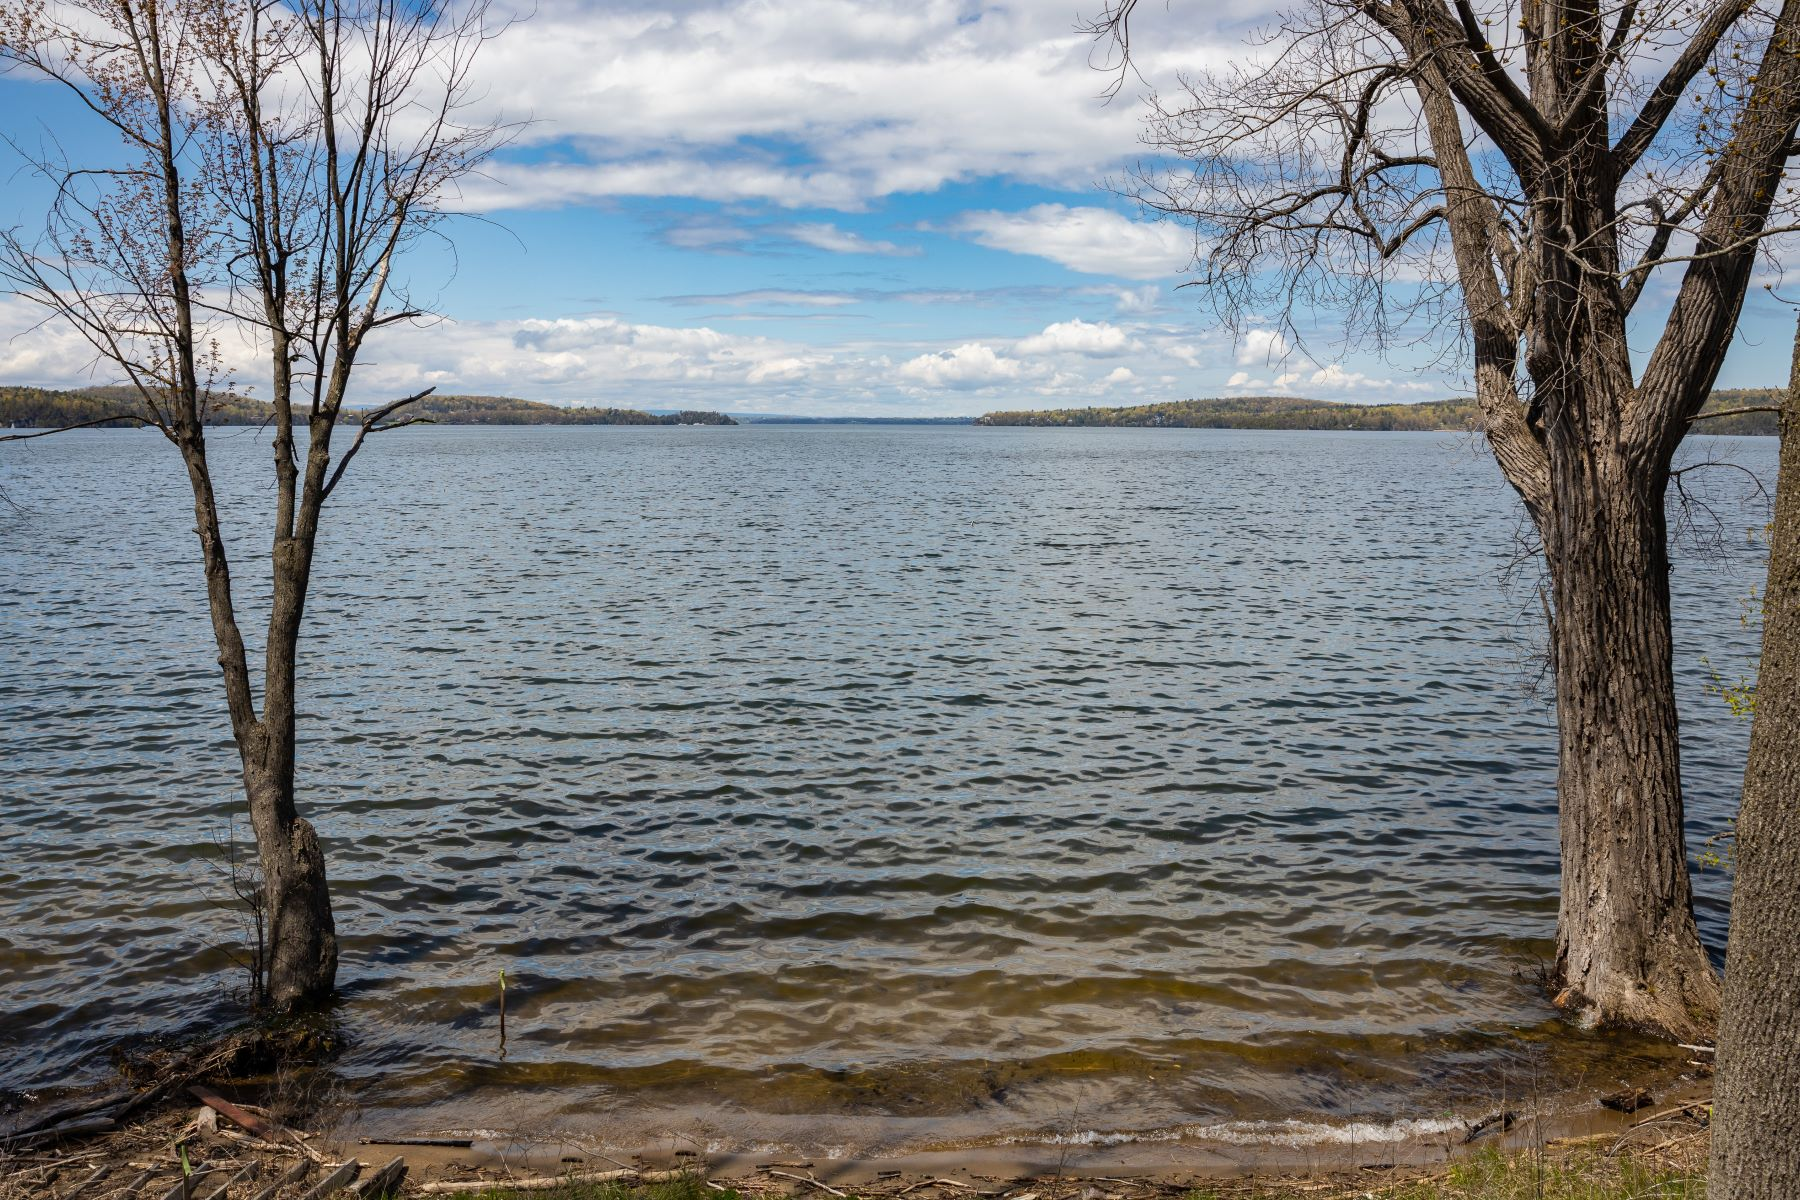 Land for Sale at 1255 E Lakeshore Drive 3, Colchester 1255 E Lakeshore Dr 3 Colchester, Vermont 05446 United States